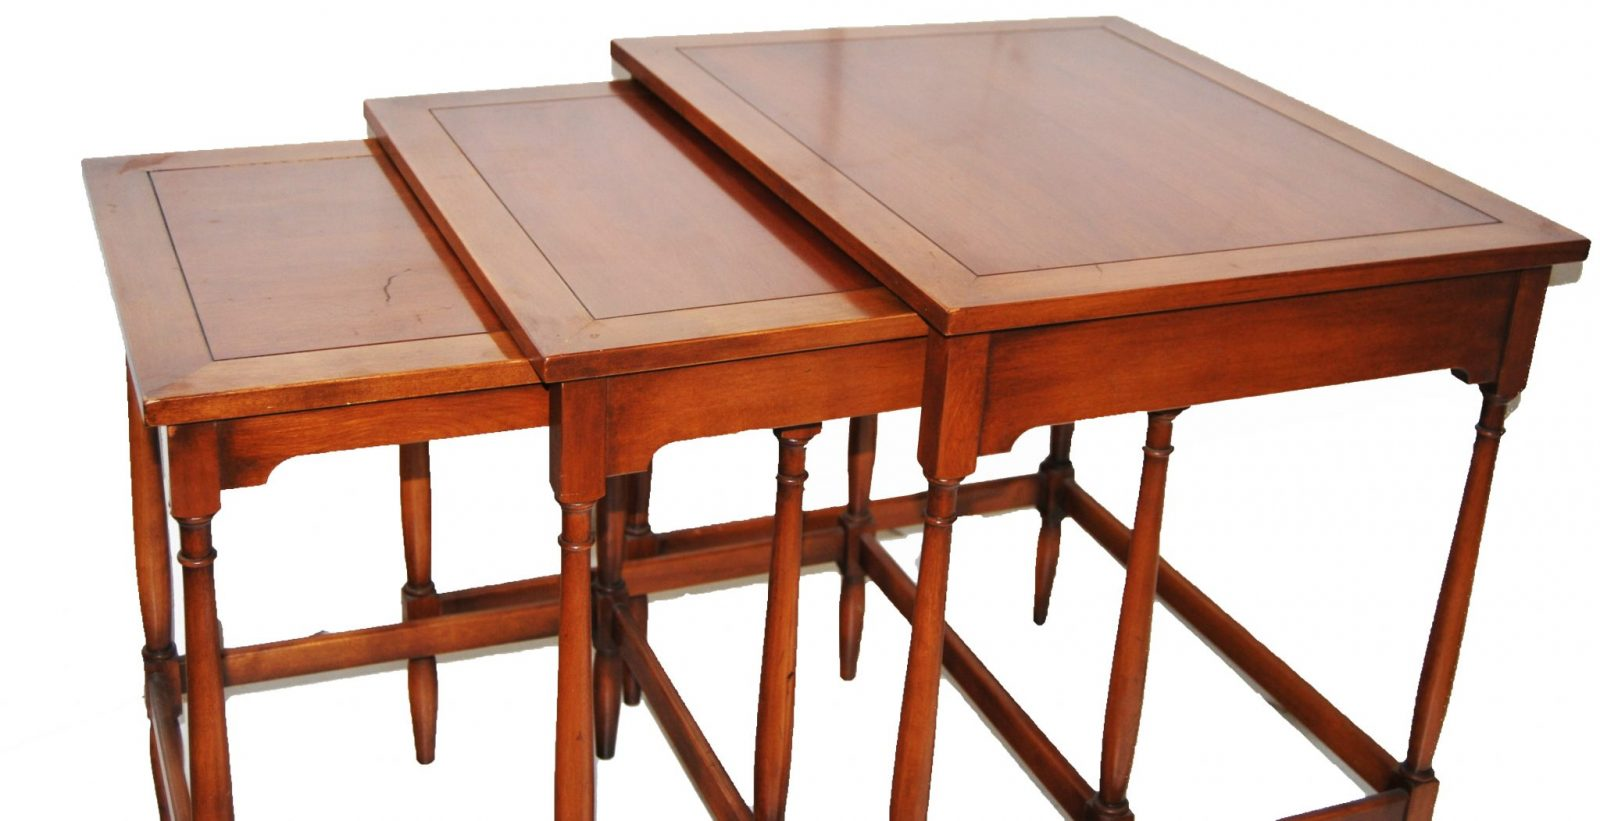 Vintage cherrywood Federal style Nesting tables : side of nesting tables from marykaysfurniture.com size 2048 x 1051 jpeg 171kB